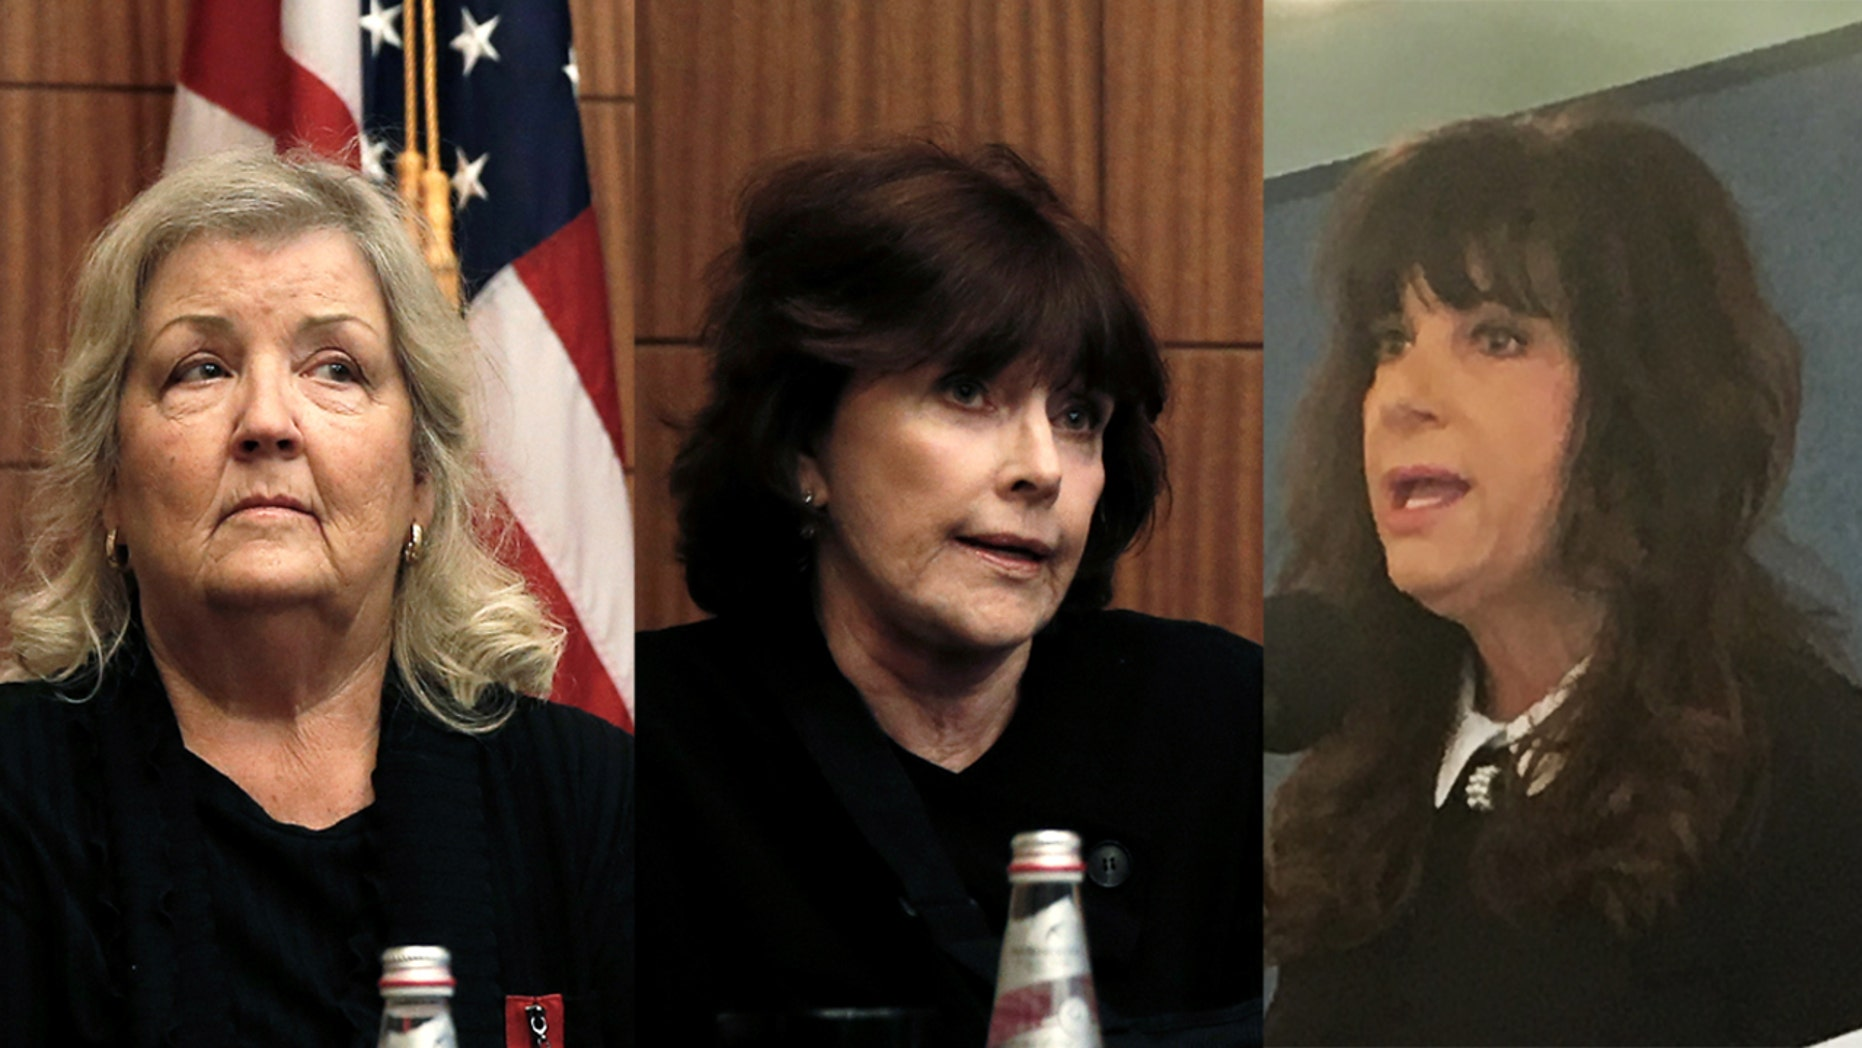 The three women – Juanita Broaddrick, Kathleen Willey, Leslie Millwee – recounted their accusations against former President Bill Clinton during a press conference at the National Press Club on Wednesday.